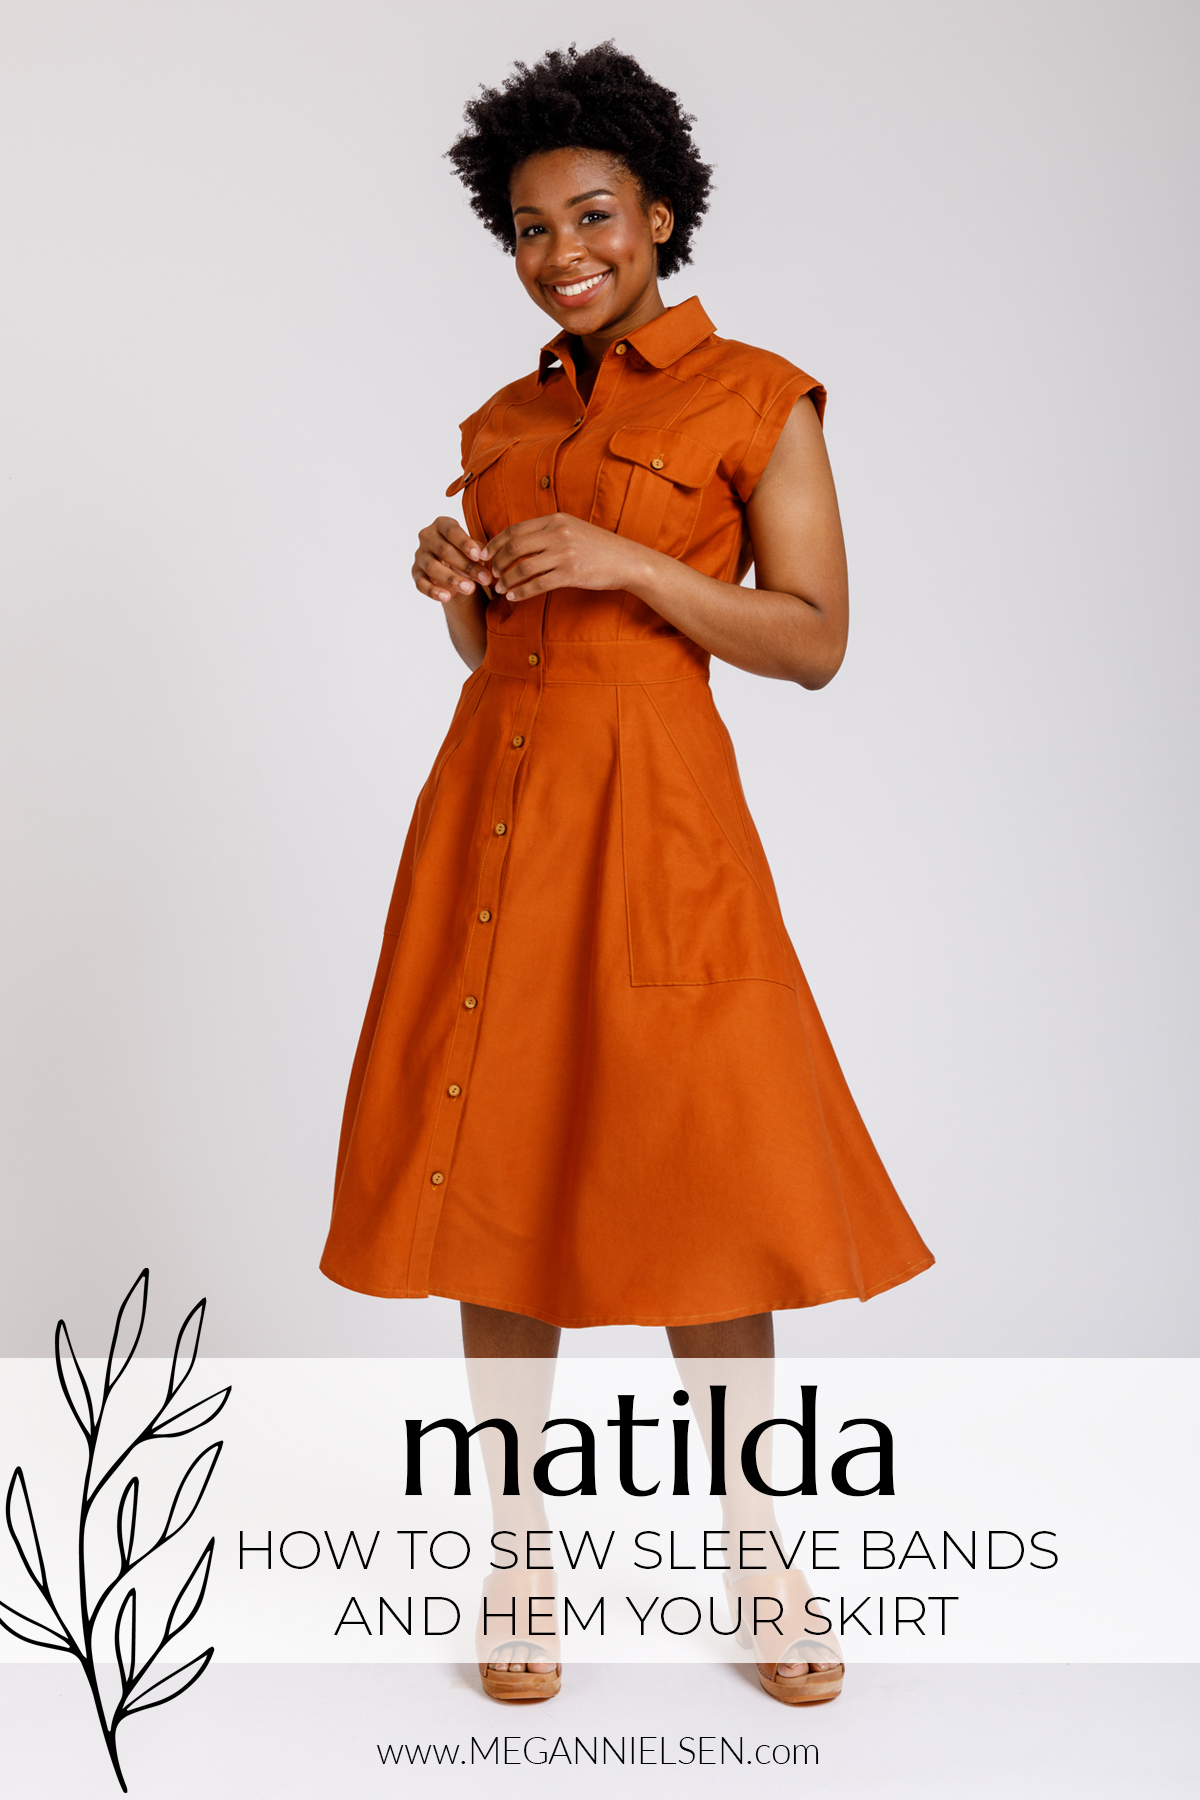 Matilda - How to sew sleeve bands and hem your skirt